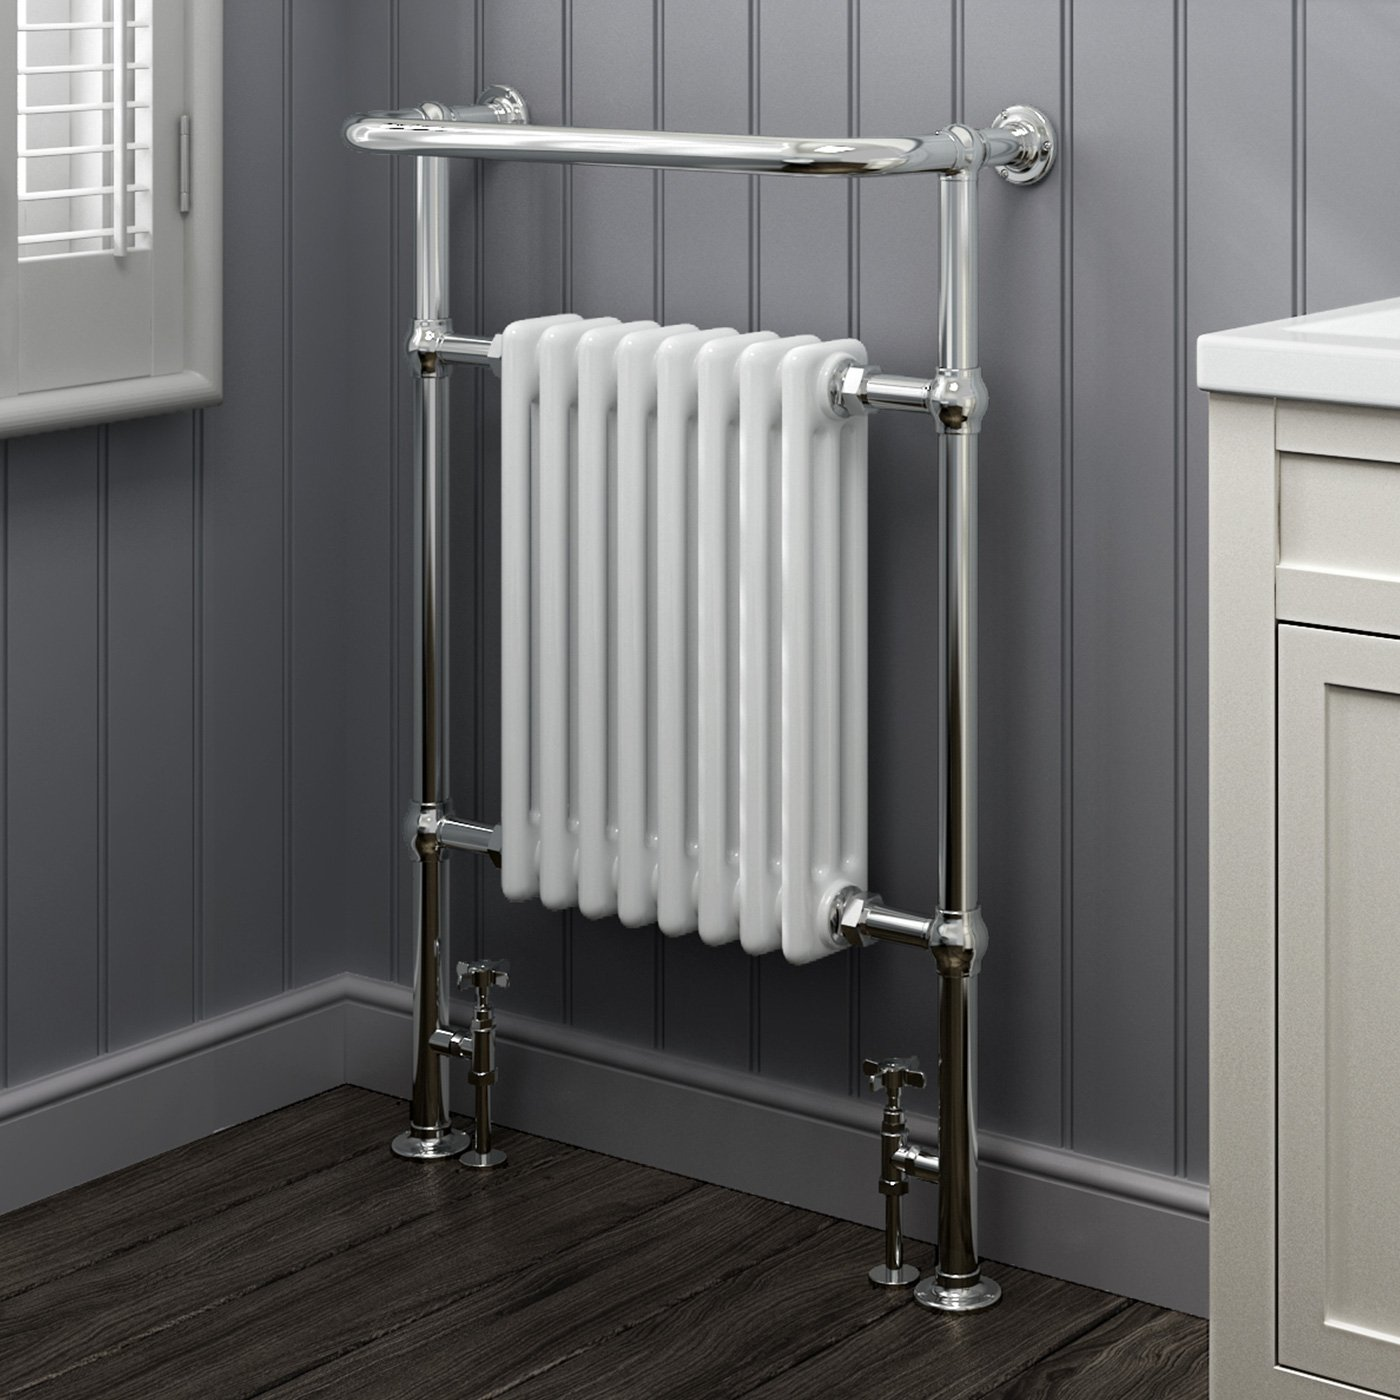 Radiator Towel Rails Bathrooms. Ibathuk 8 Column Traditional Designer Heated Towel Rail Bathroom Radiator All Sizes Rt02 Ibathuk Amazon Co Uk Kitchen Home